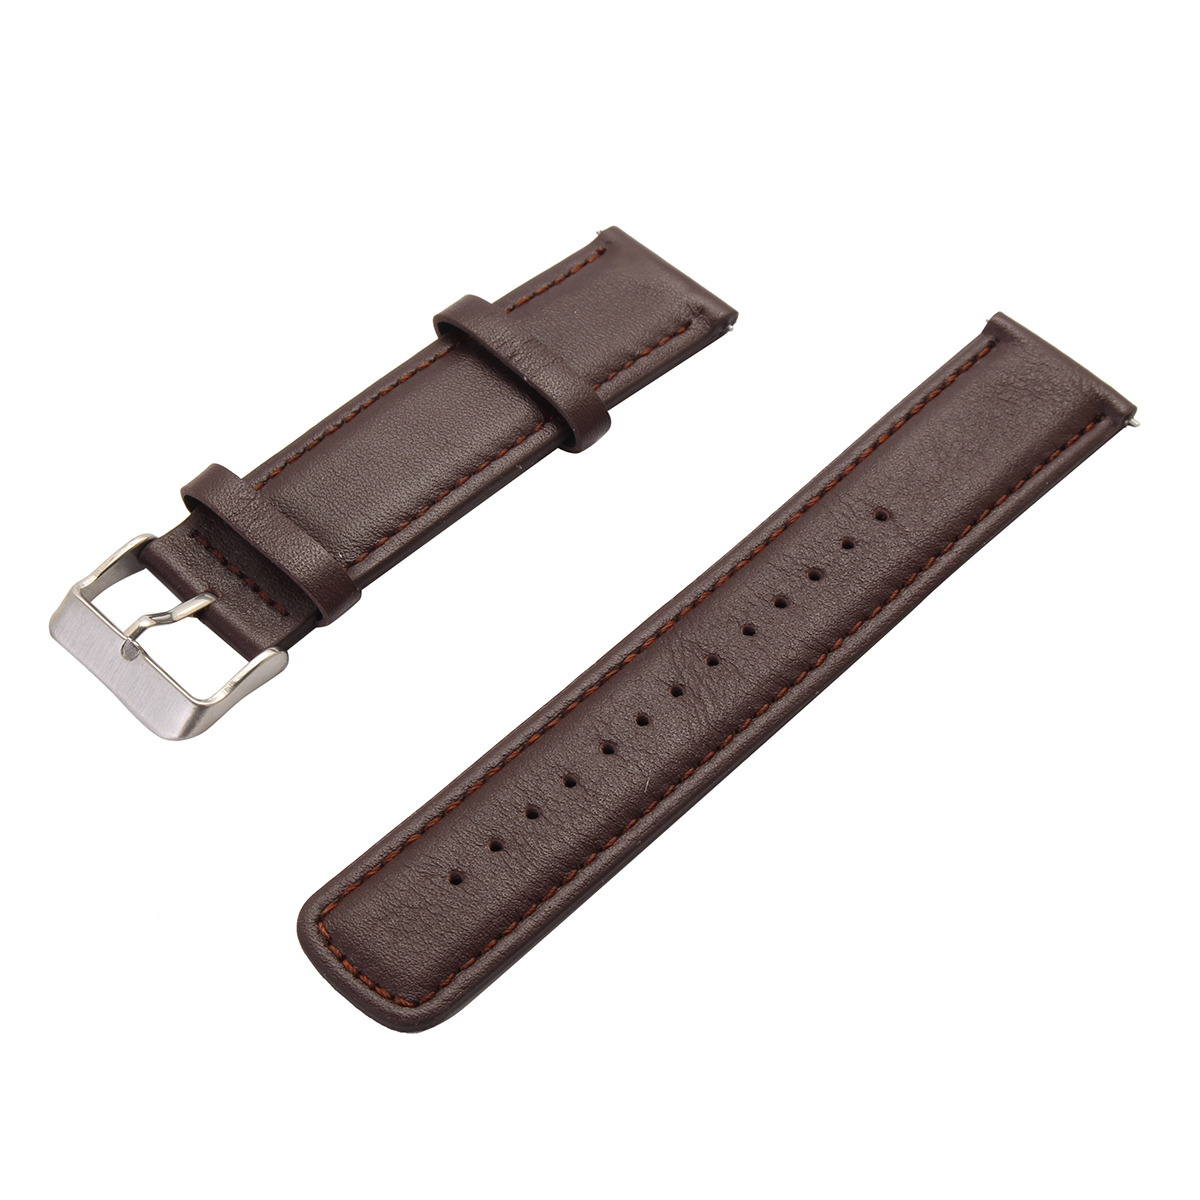 22mm Replaceable Leather Watch Band Strap Bracelet Time Steel for Samsung Gear 2/S2